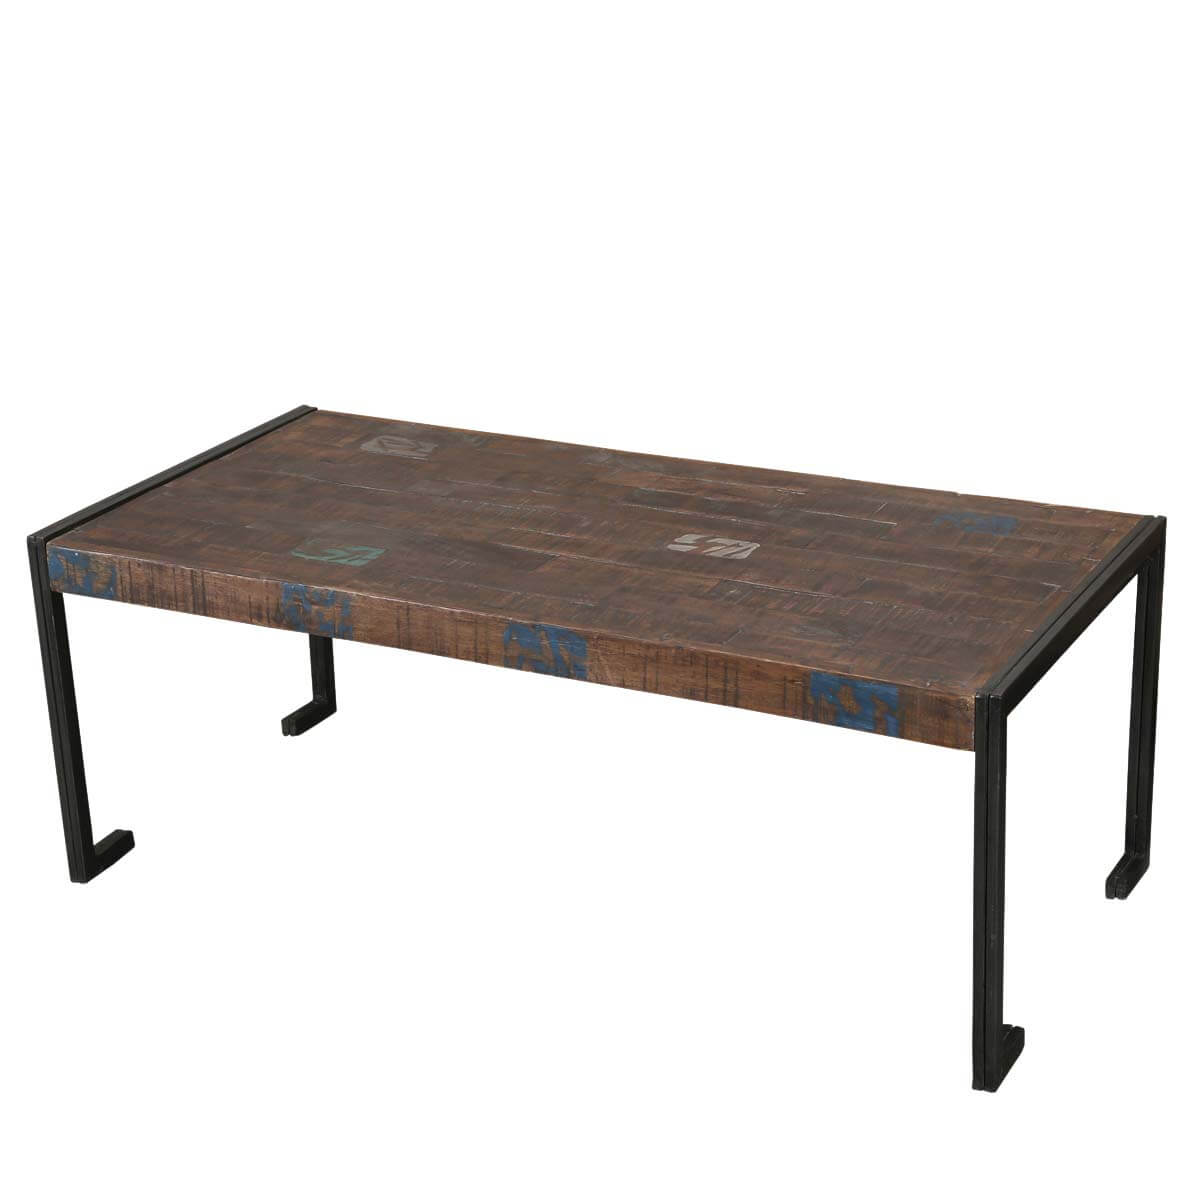 Philadelphia reclaimed wood industrial metal frame rustic coffee table Rustic wood and metal coffee table